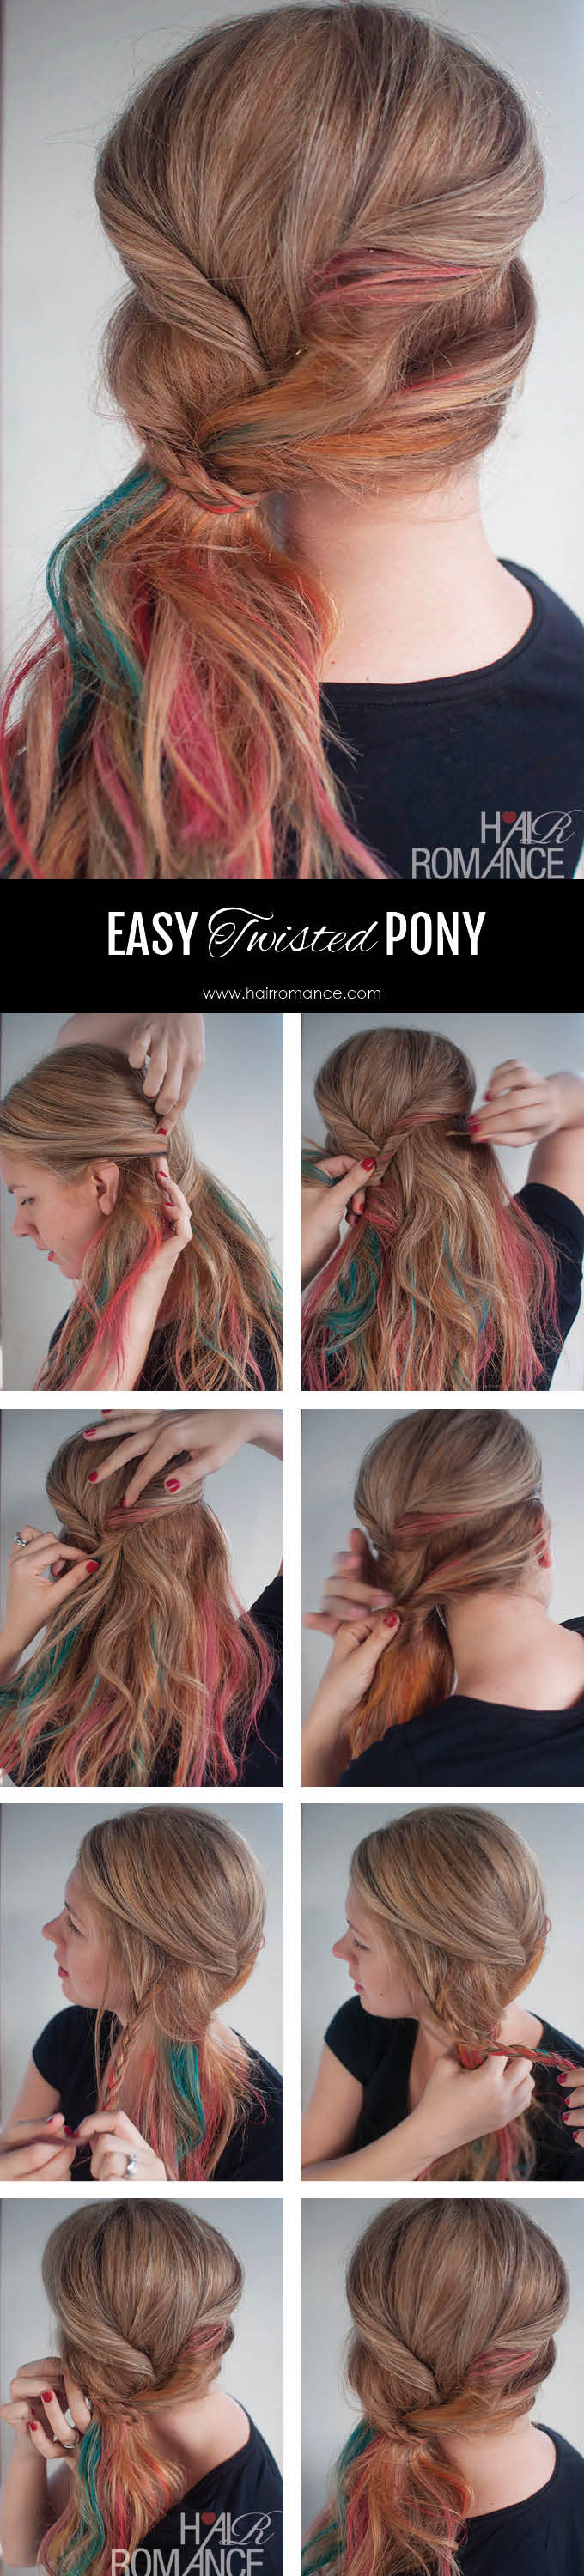 Hair Romance - easy twisted ponytail hairstyle tutorial - click through for instructions